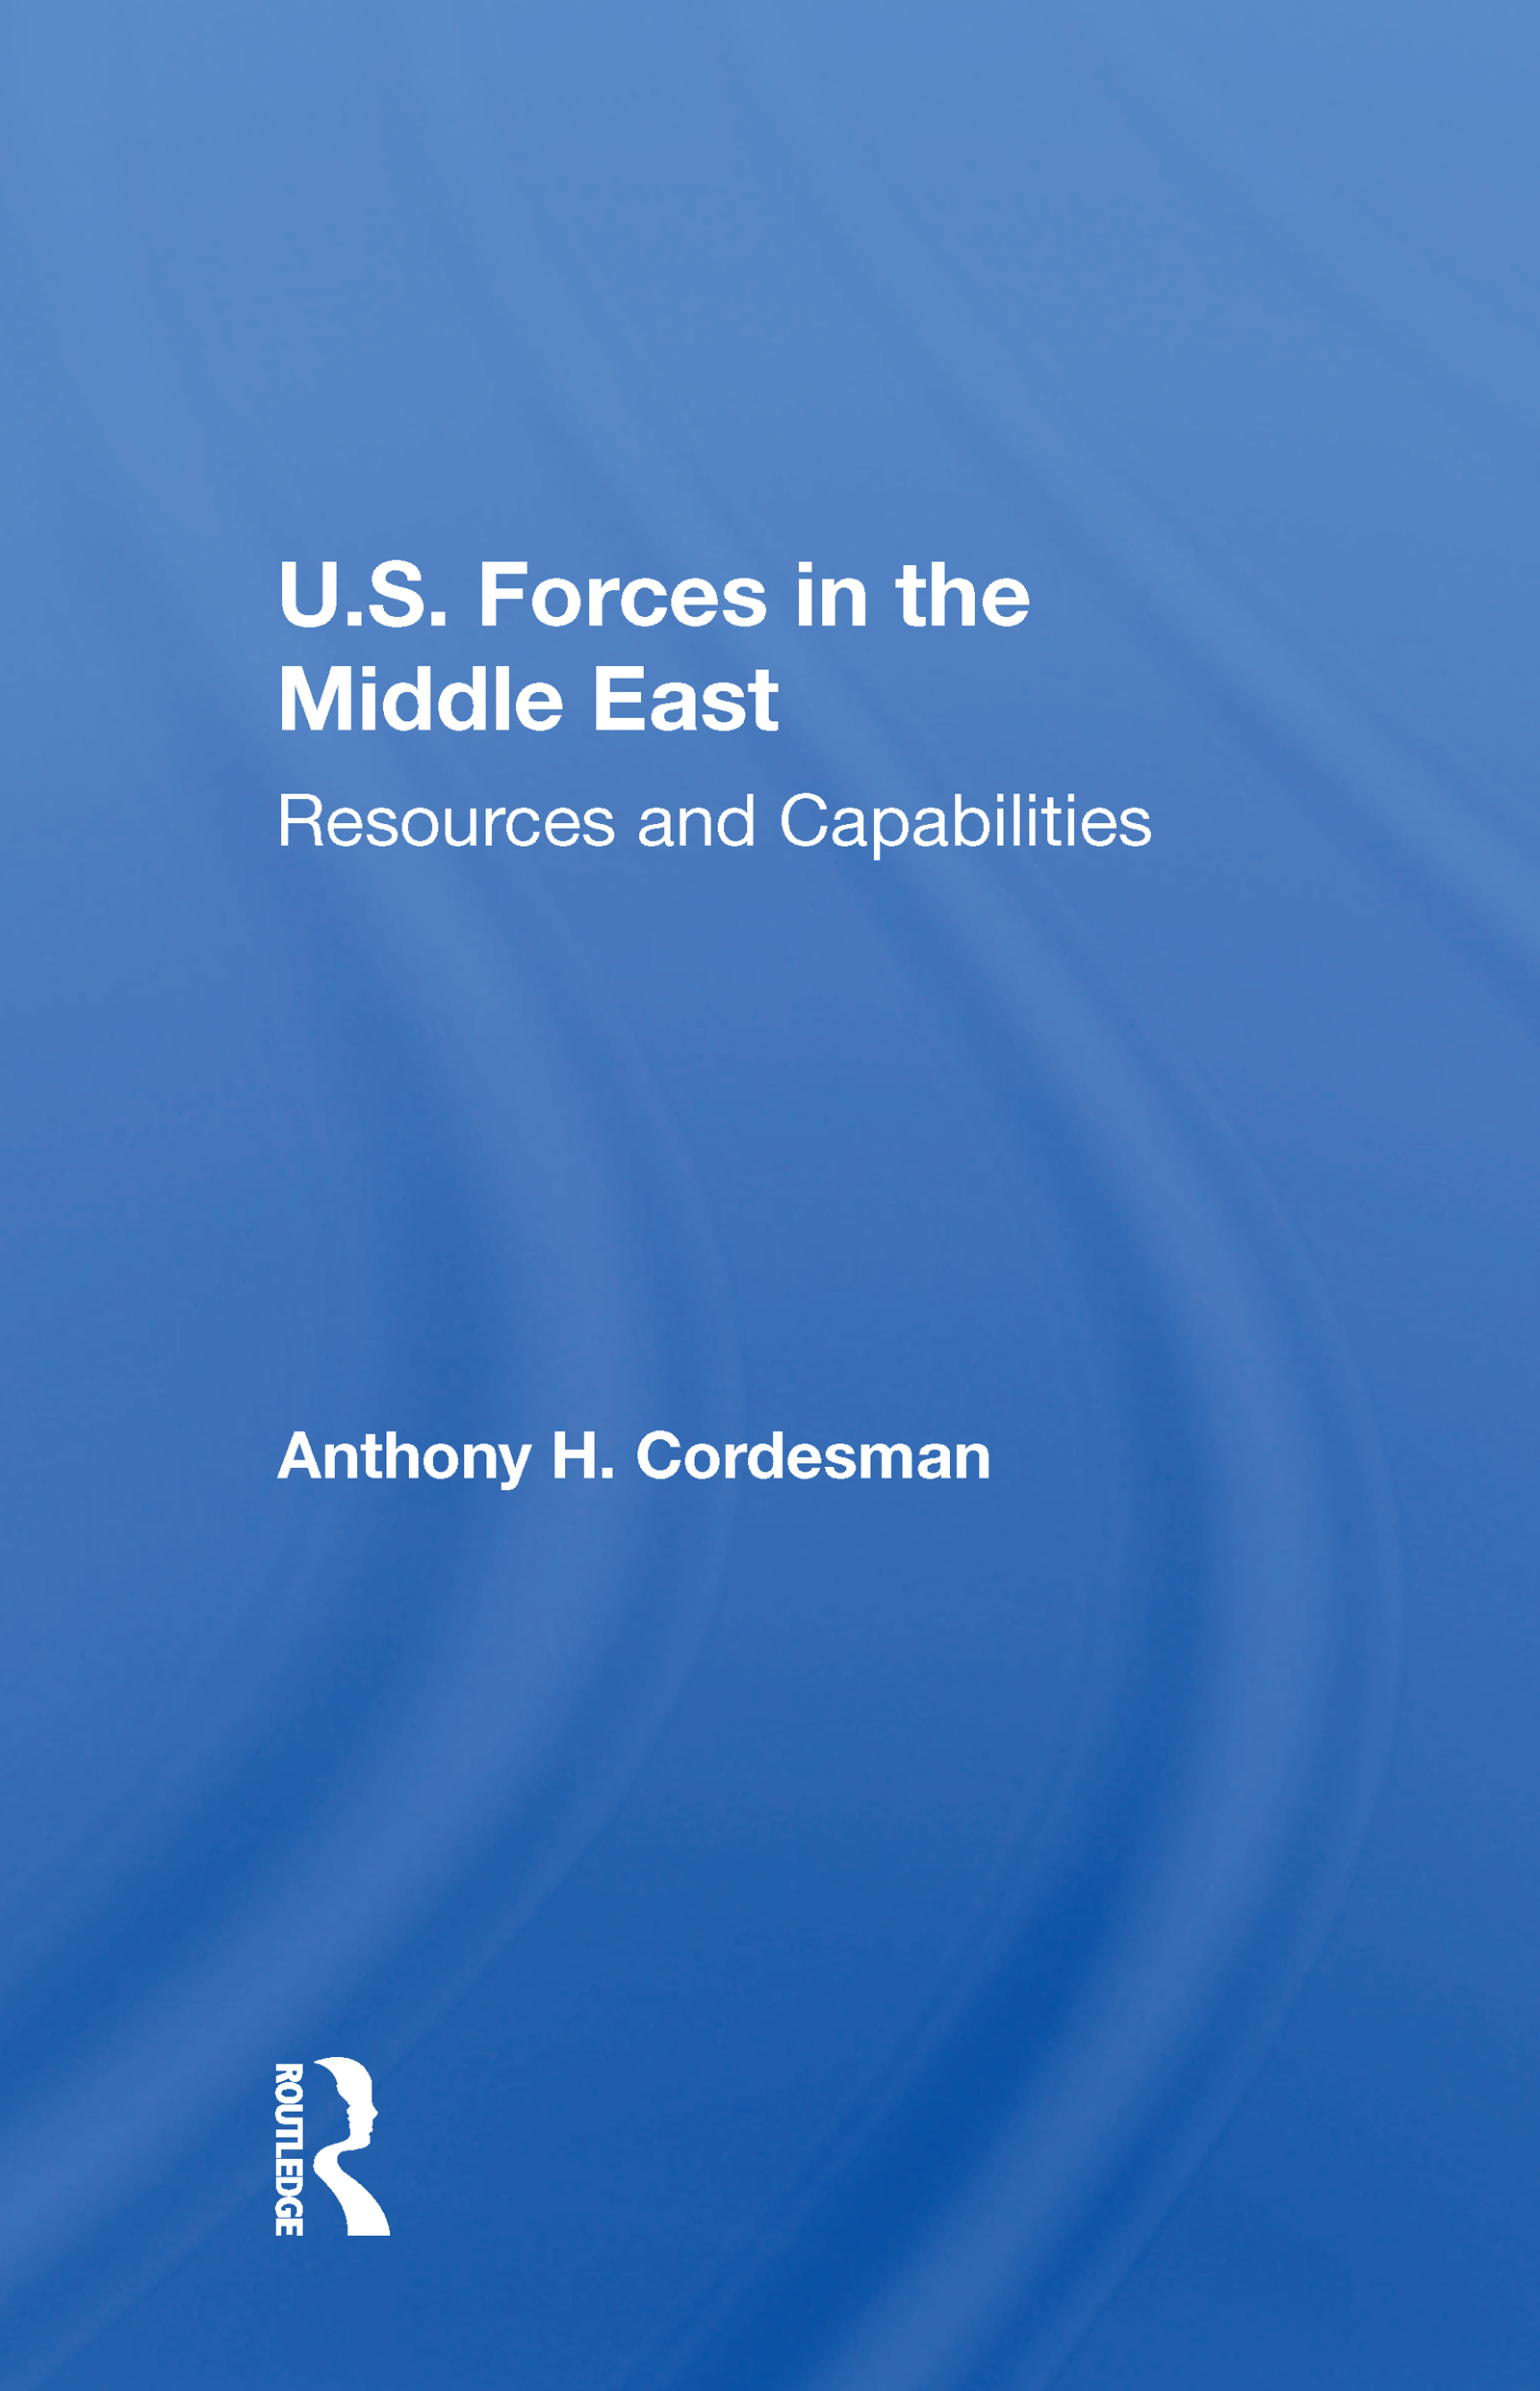 U.S. Forces In The Middle East